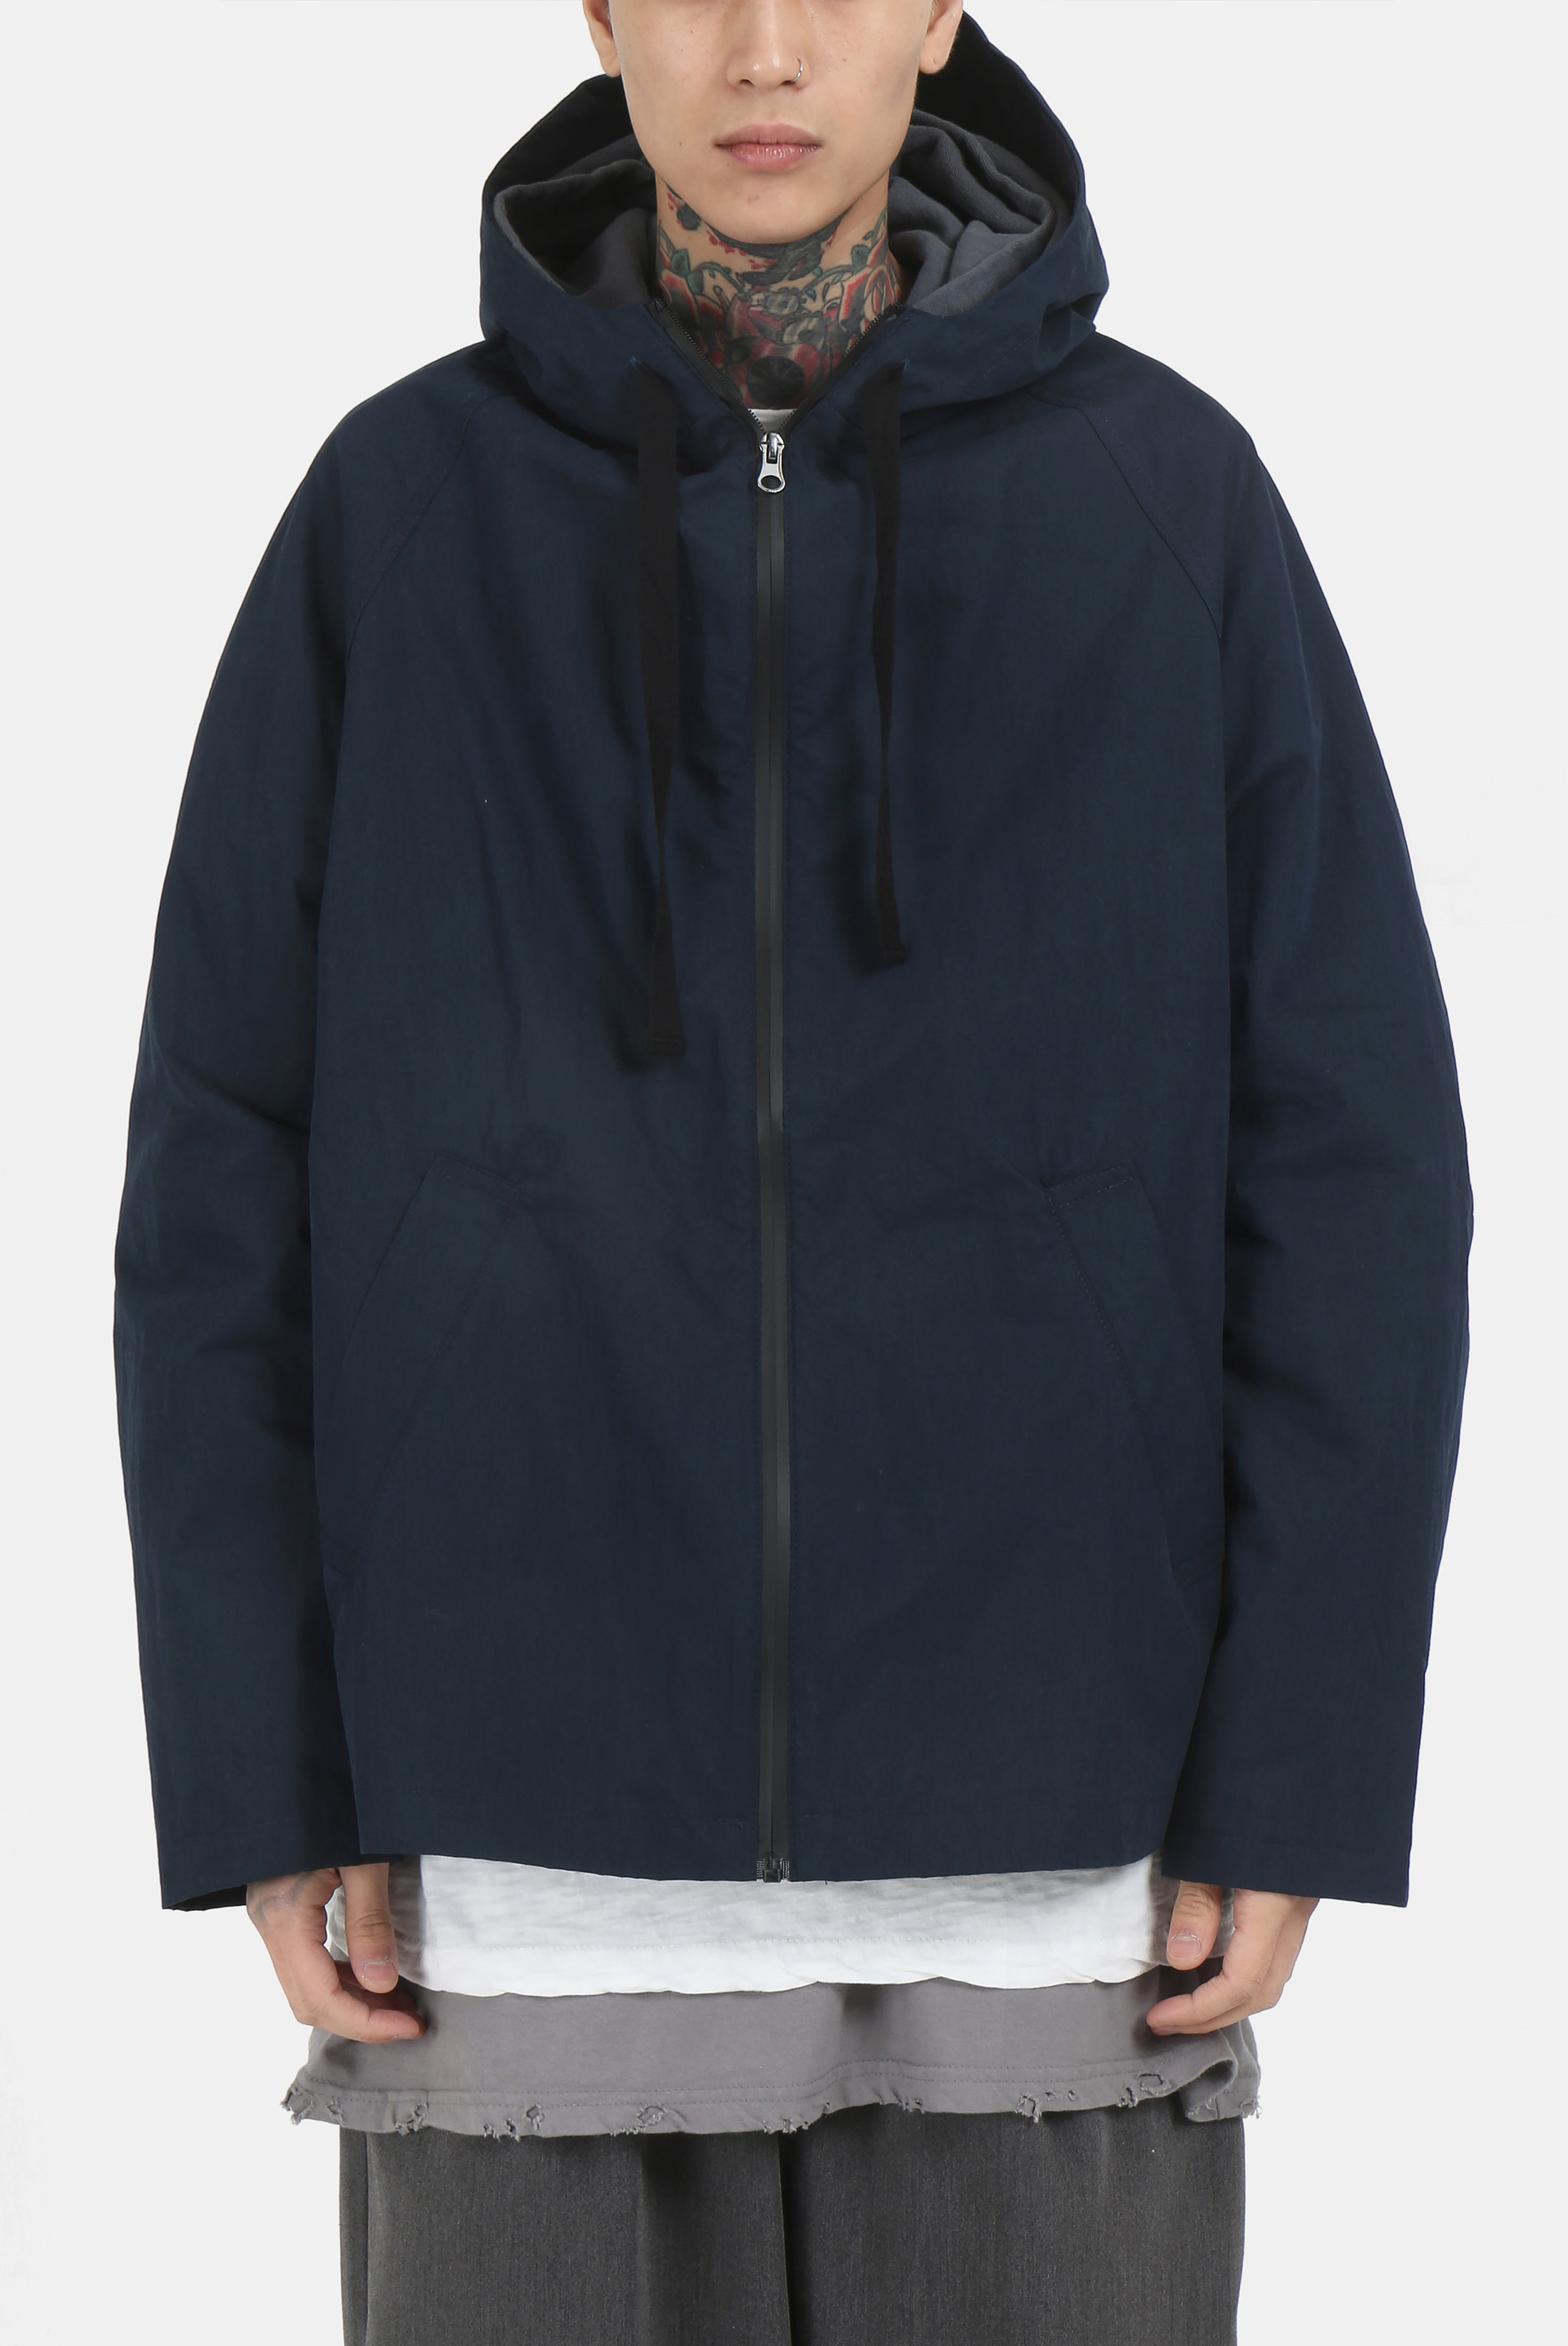 Nylon_Cotton String Hood_Jacket